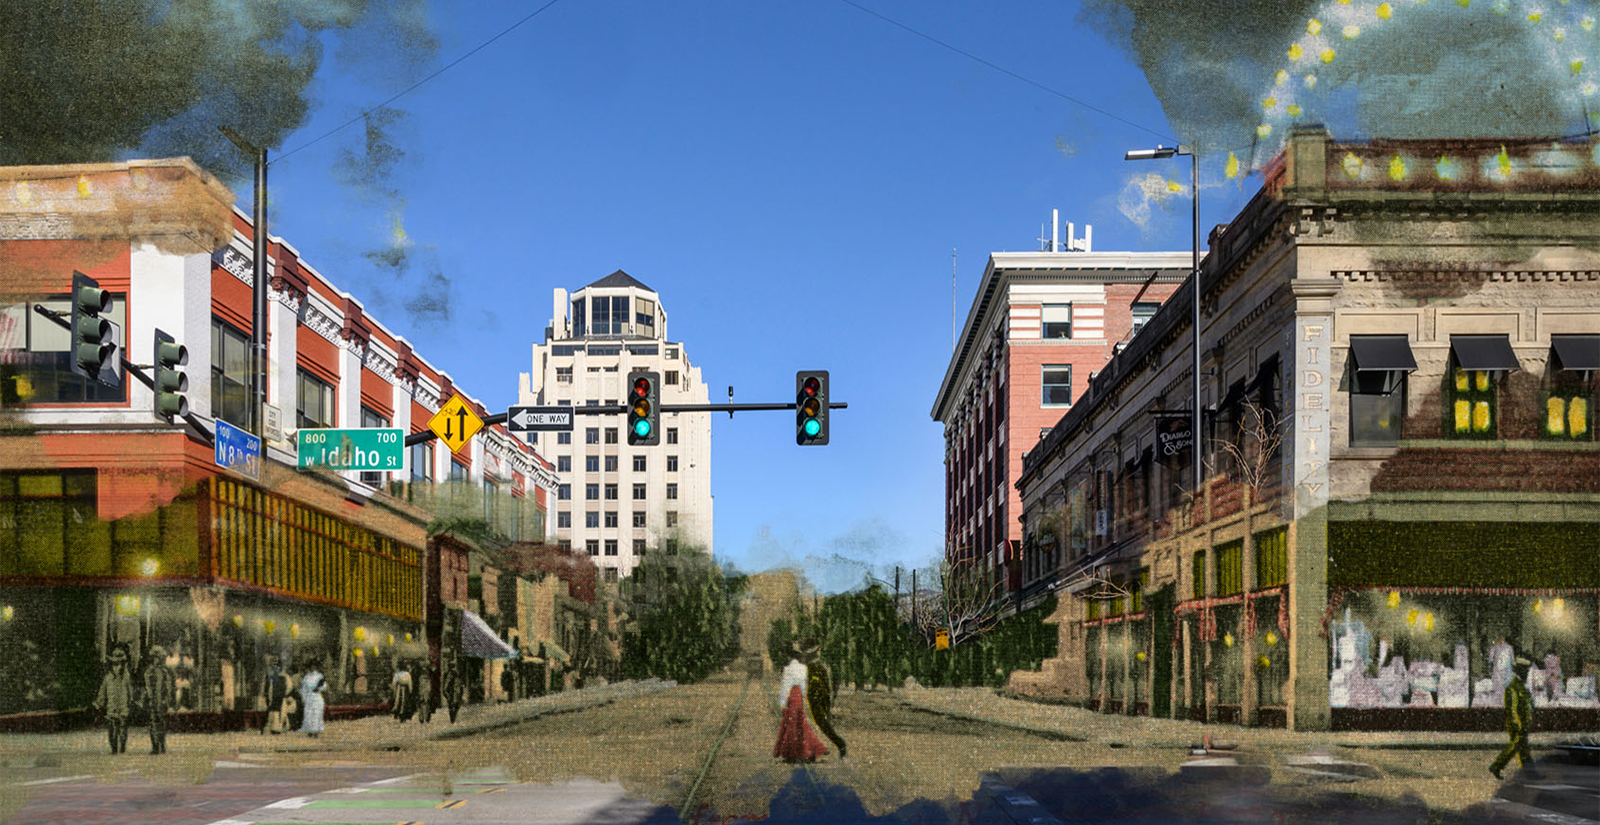 Side by side comparison of old and new Boise photos, downtown Boise street